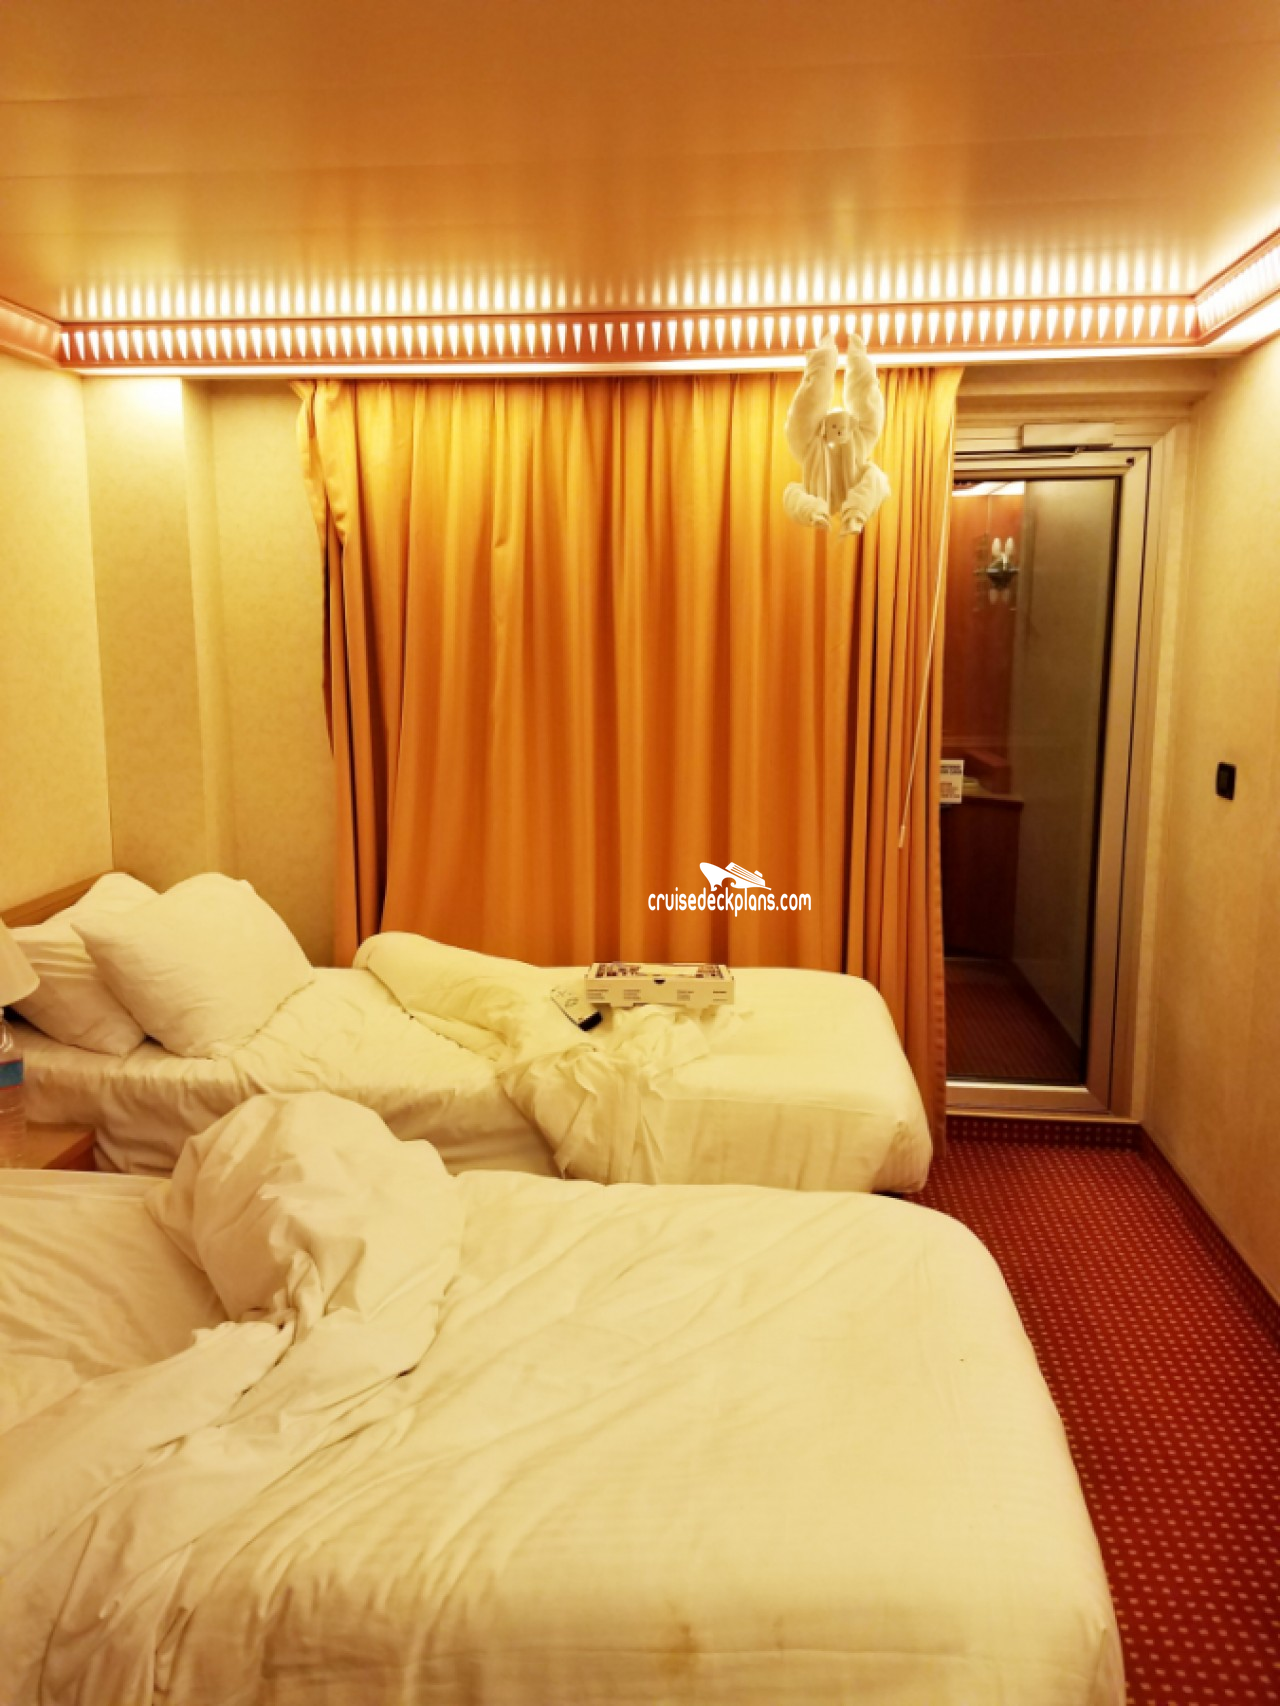 carnival cruise liberty balcony room Carnival Liberty Deck Plans Diagrams Pictures Video